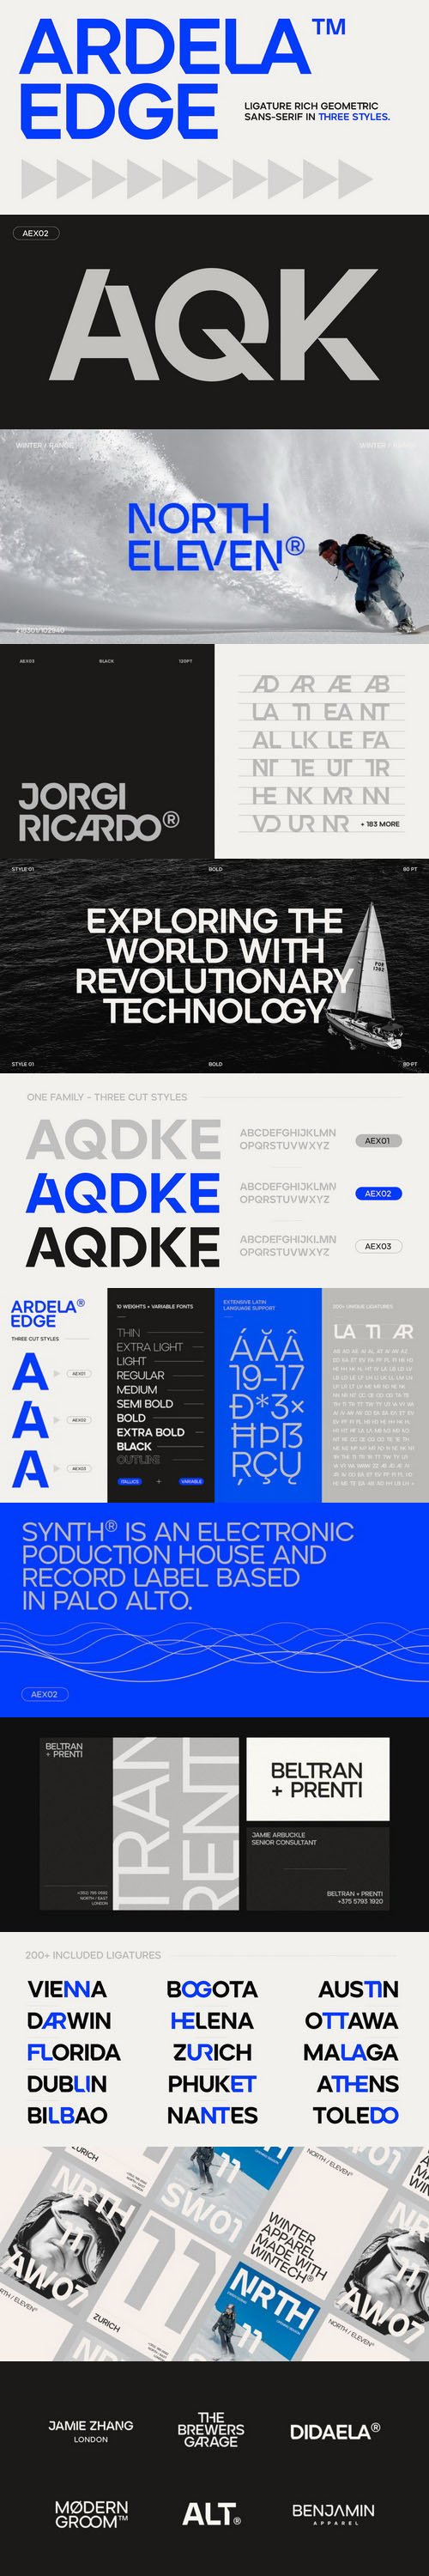 ARDELA EDGE Font Family - Ligature Rich Geometric Sans-Serif [51-Weights]